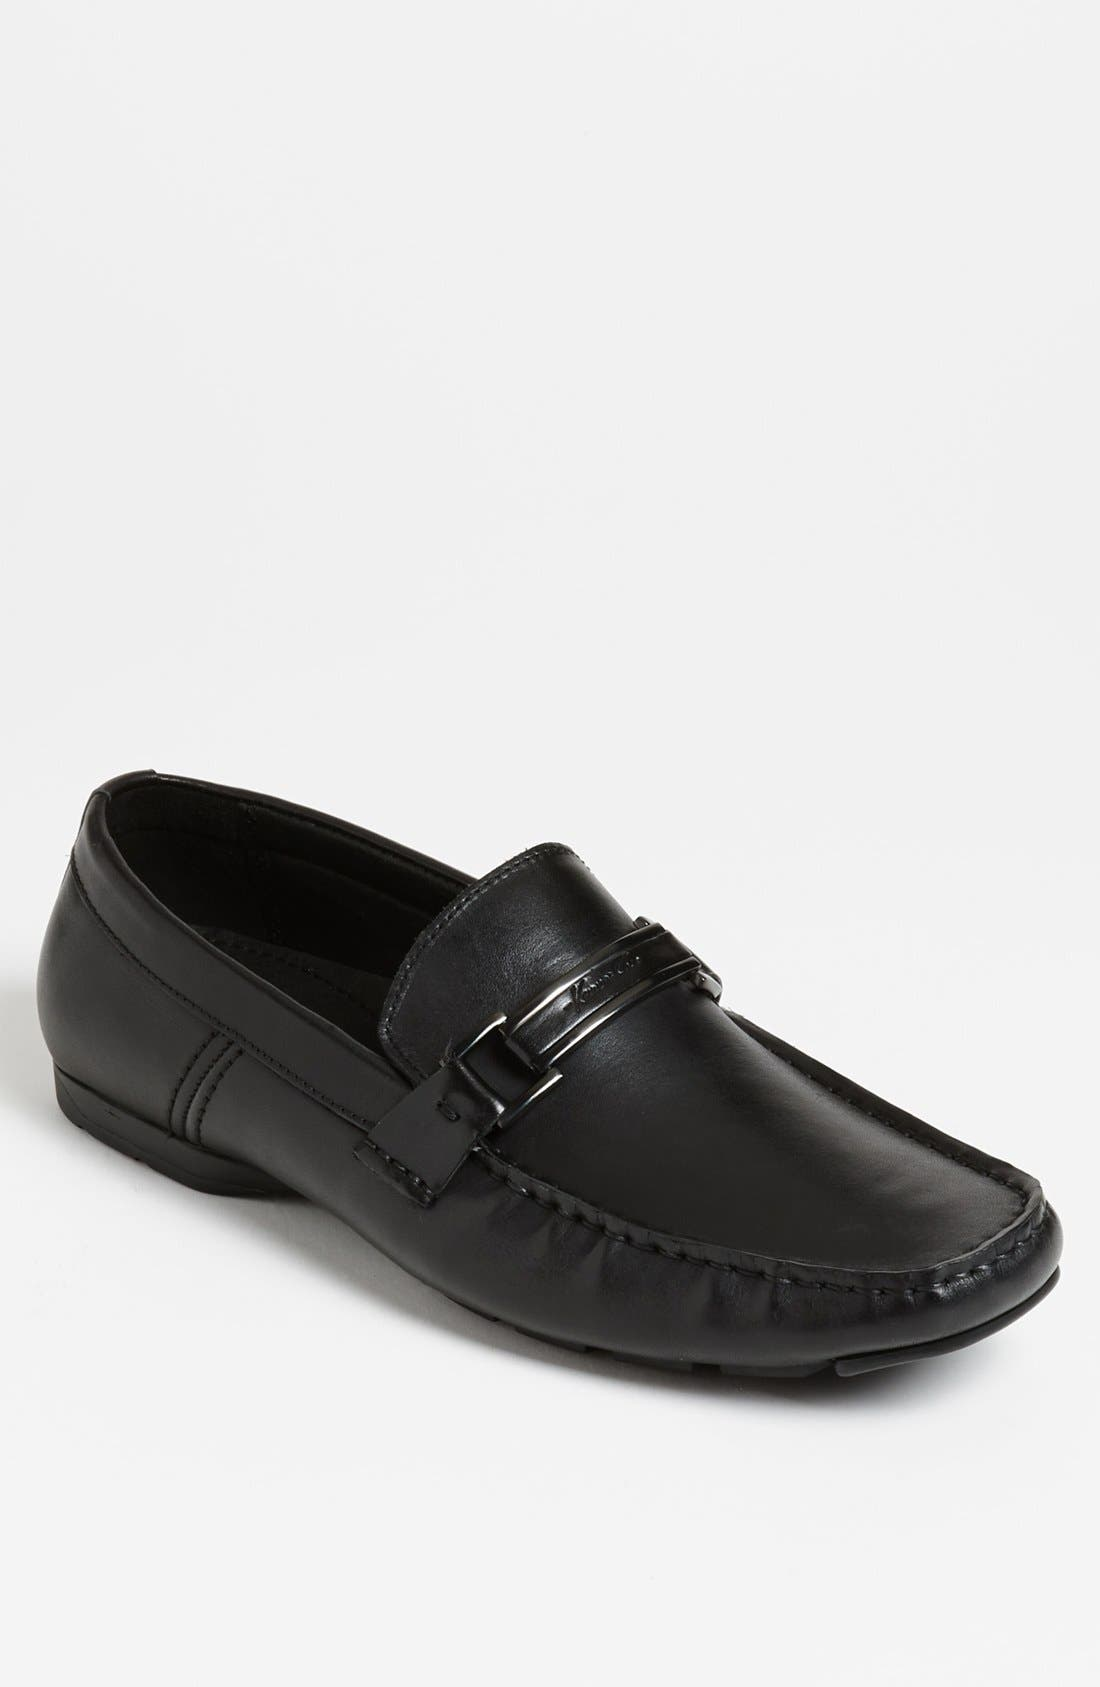 Main Image - Kenneth Cole New York 'Private Is-Land' Loafer